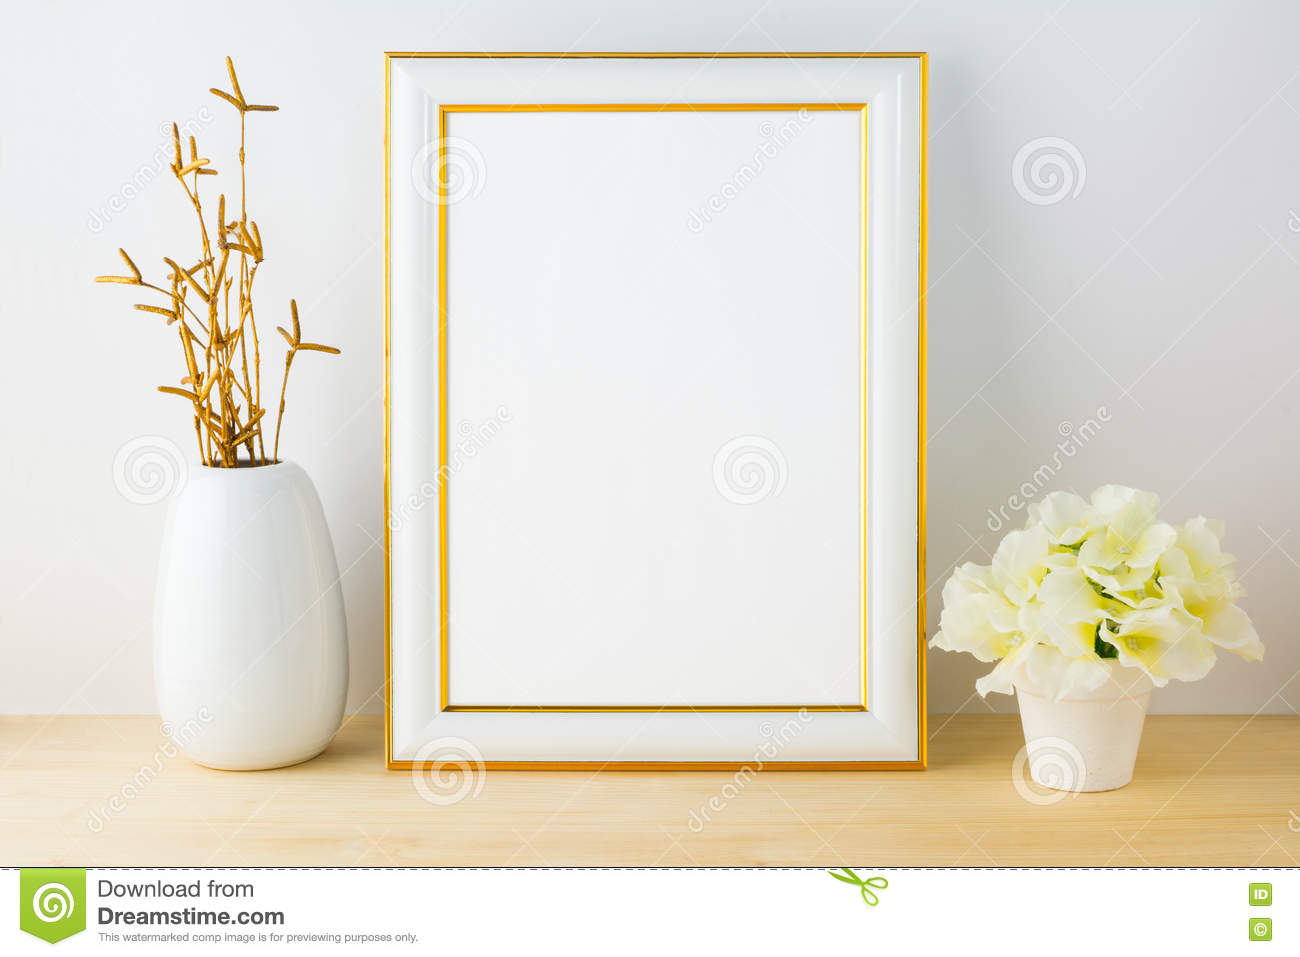 4a74c8b62ac2 Frame Mockup With White Flowerpot Stock Image - Image of design ...